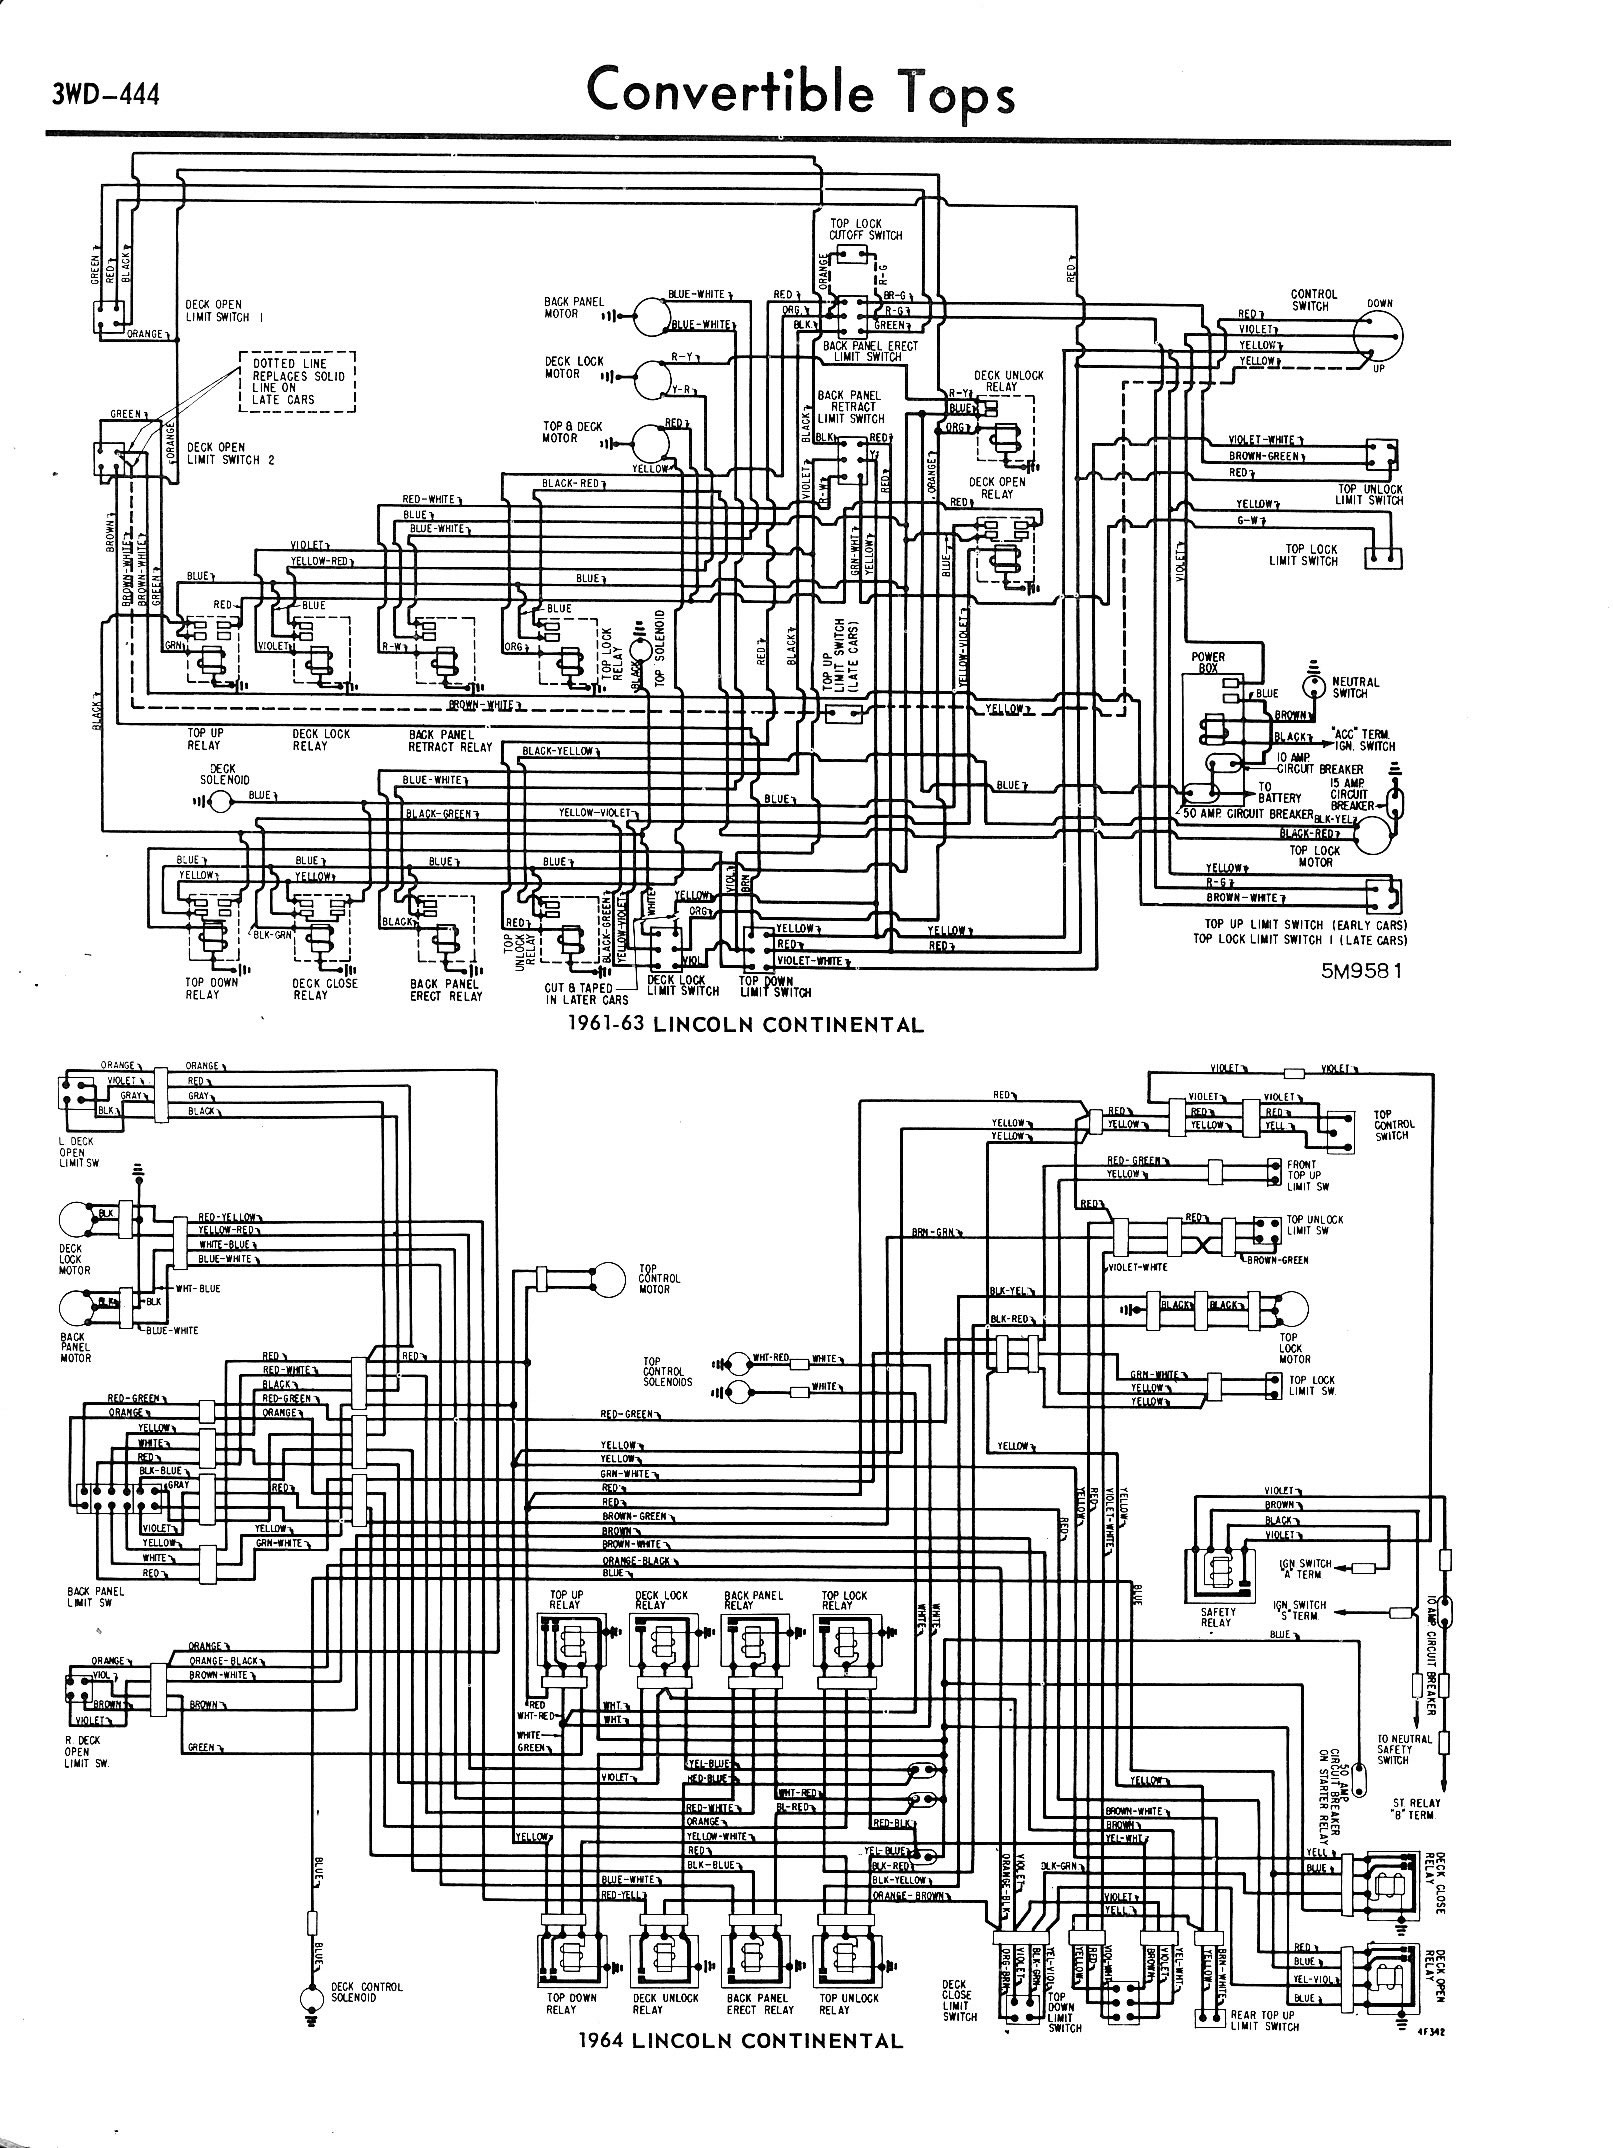 3WD 444_jpg 1961 ford falcon wiring harness ford ranger wiring harness Ford Truck Wiring Diagrams at crackthecode.co